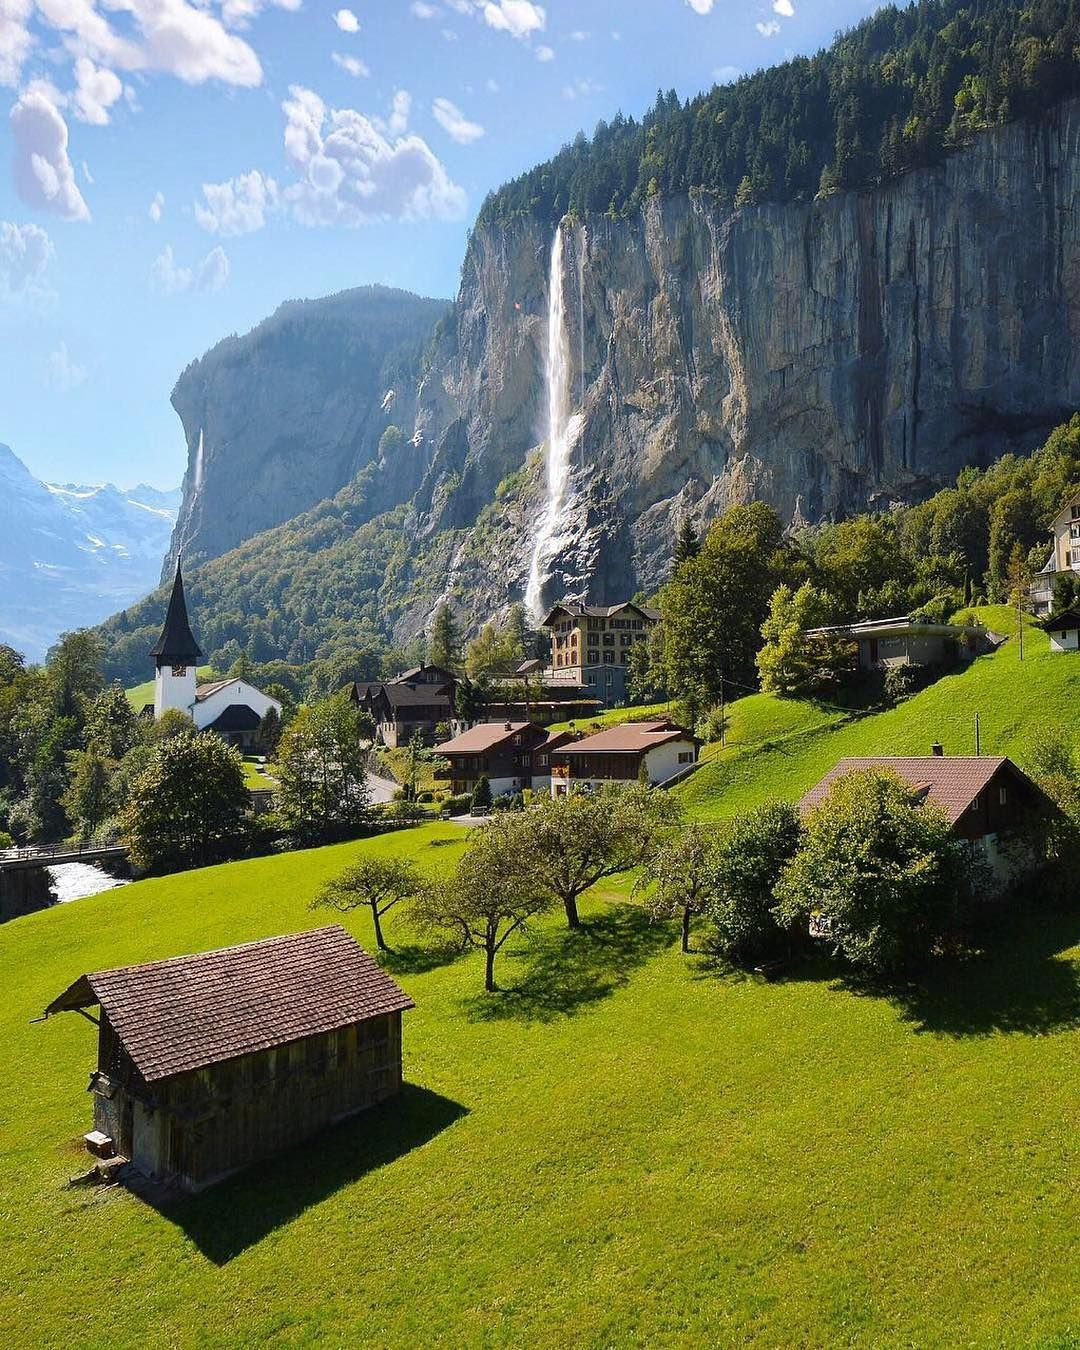 Amazing Places To Stay Switzerland: Pin By Locke On RPG'S/ETC.